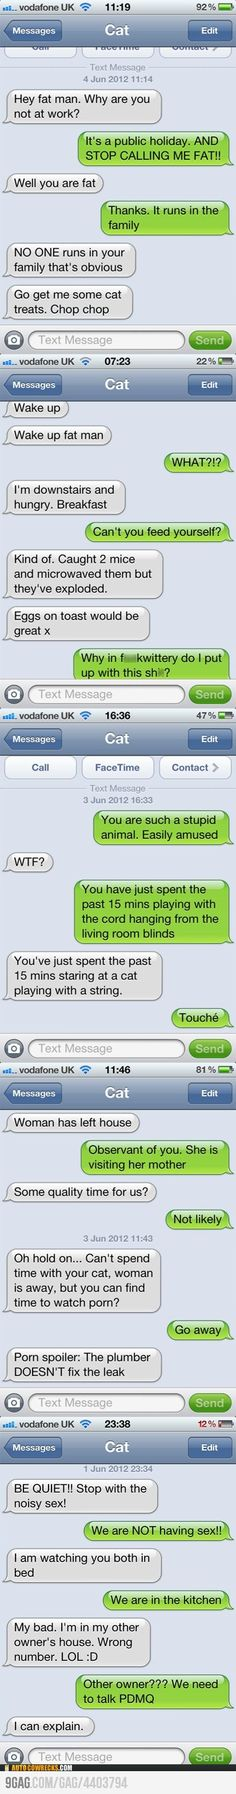 """Text from cat( hello, this is cat). """"Why in fuckwittery do I put up with this shit?"""""""